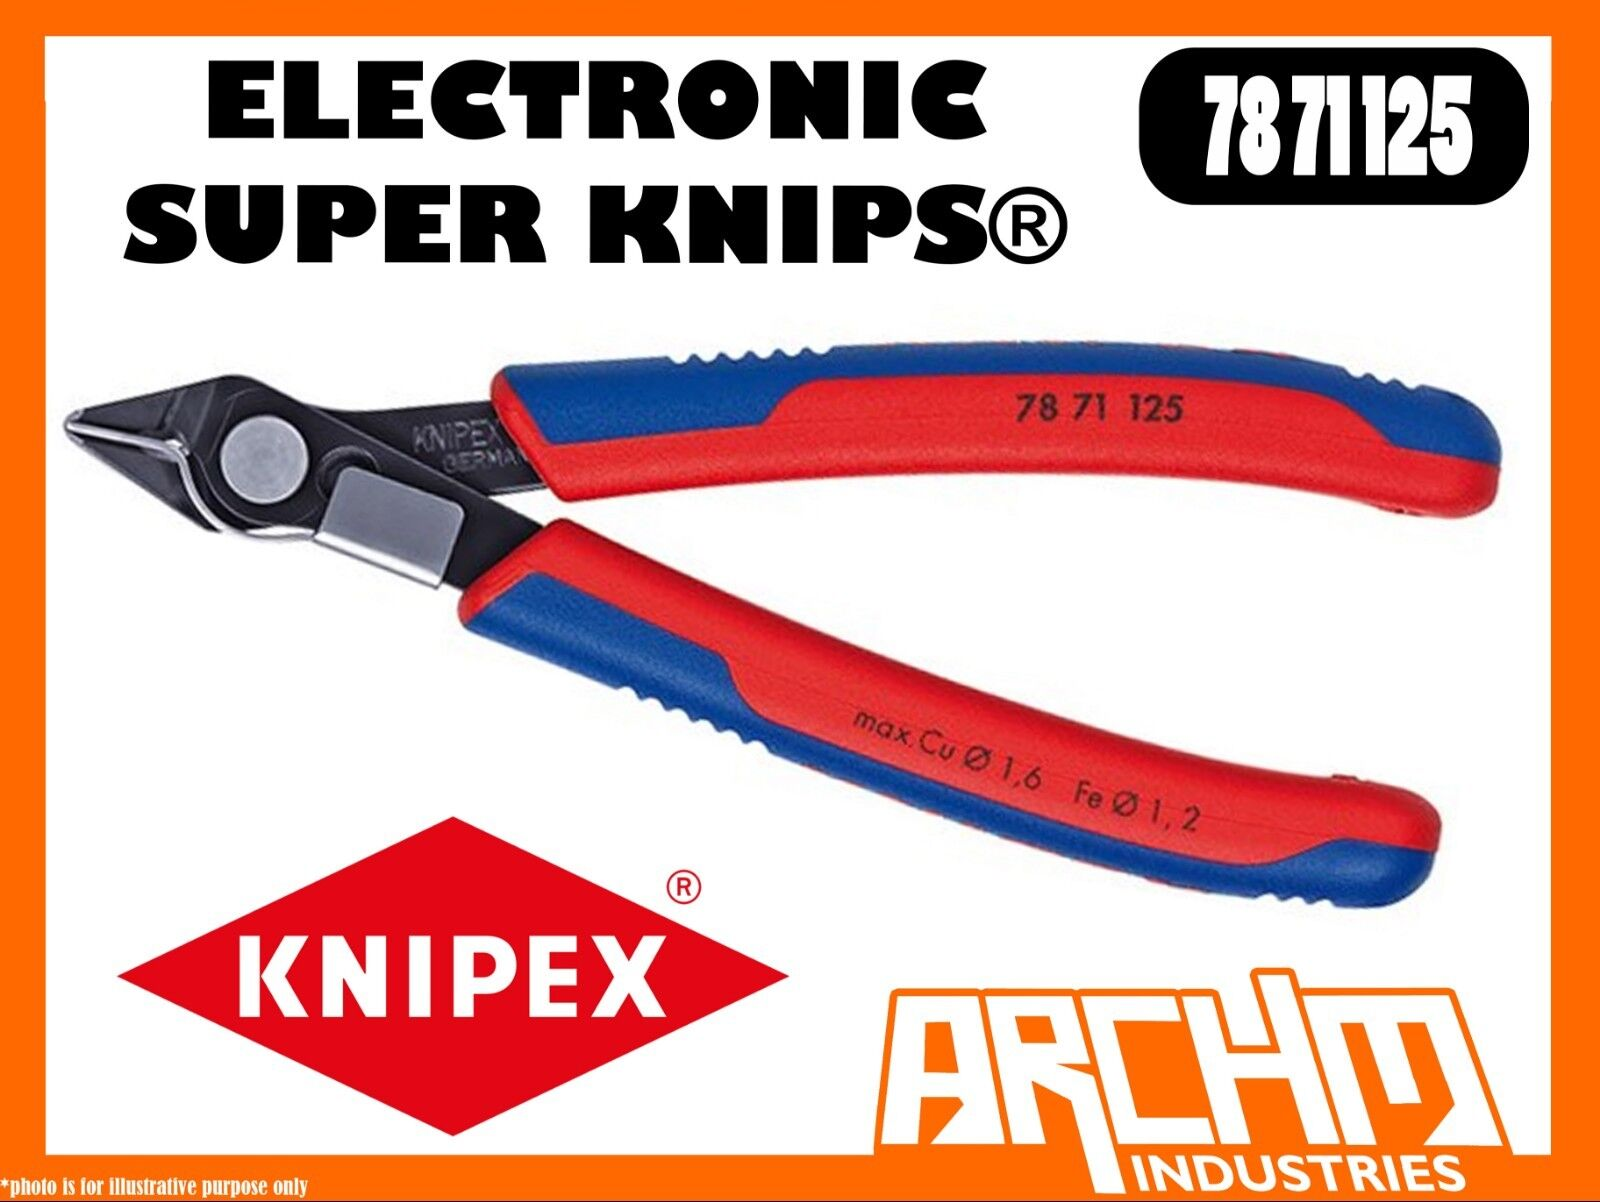 KNIPEX 7871125 - ELECTRONIC SUPER KNIPS® 125MM - PLIERS CUTTING EDGES BURNISHED